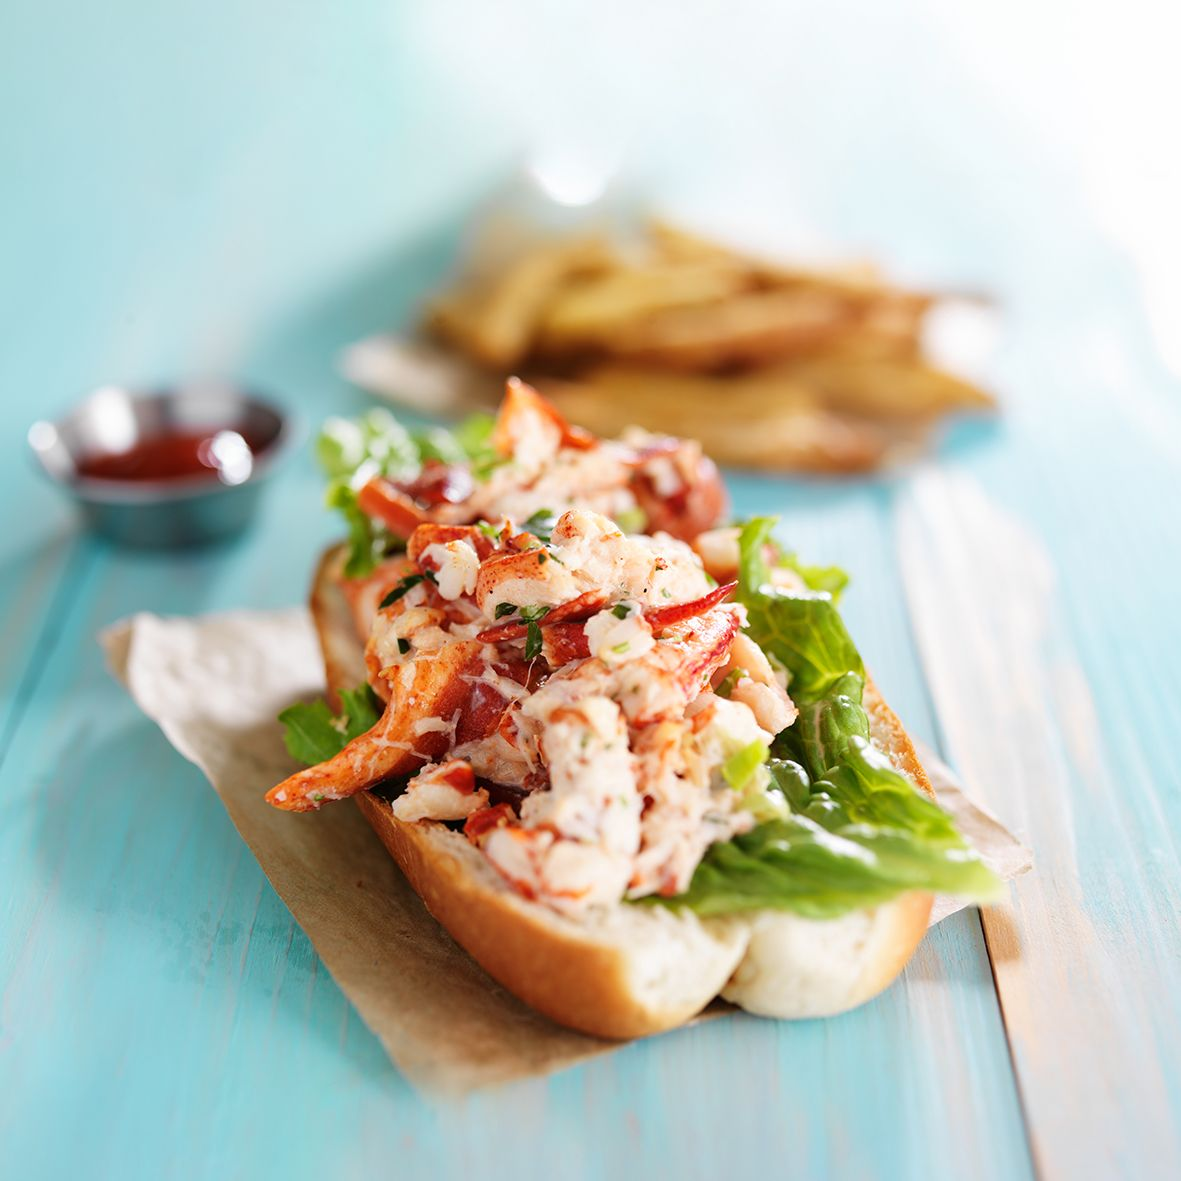 Tasmanian_Crayfish_Buns_-_Website_Tile.jpg